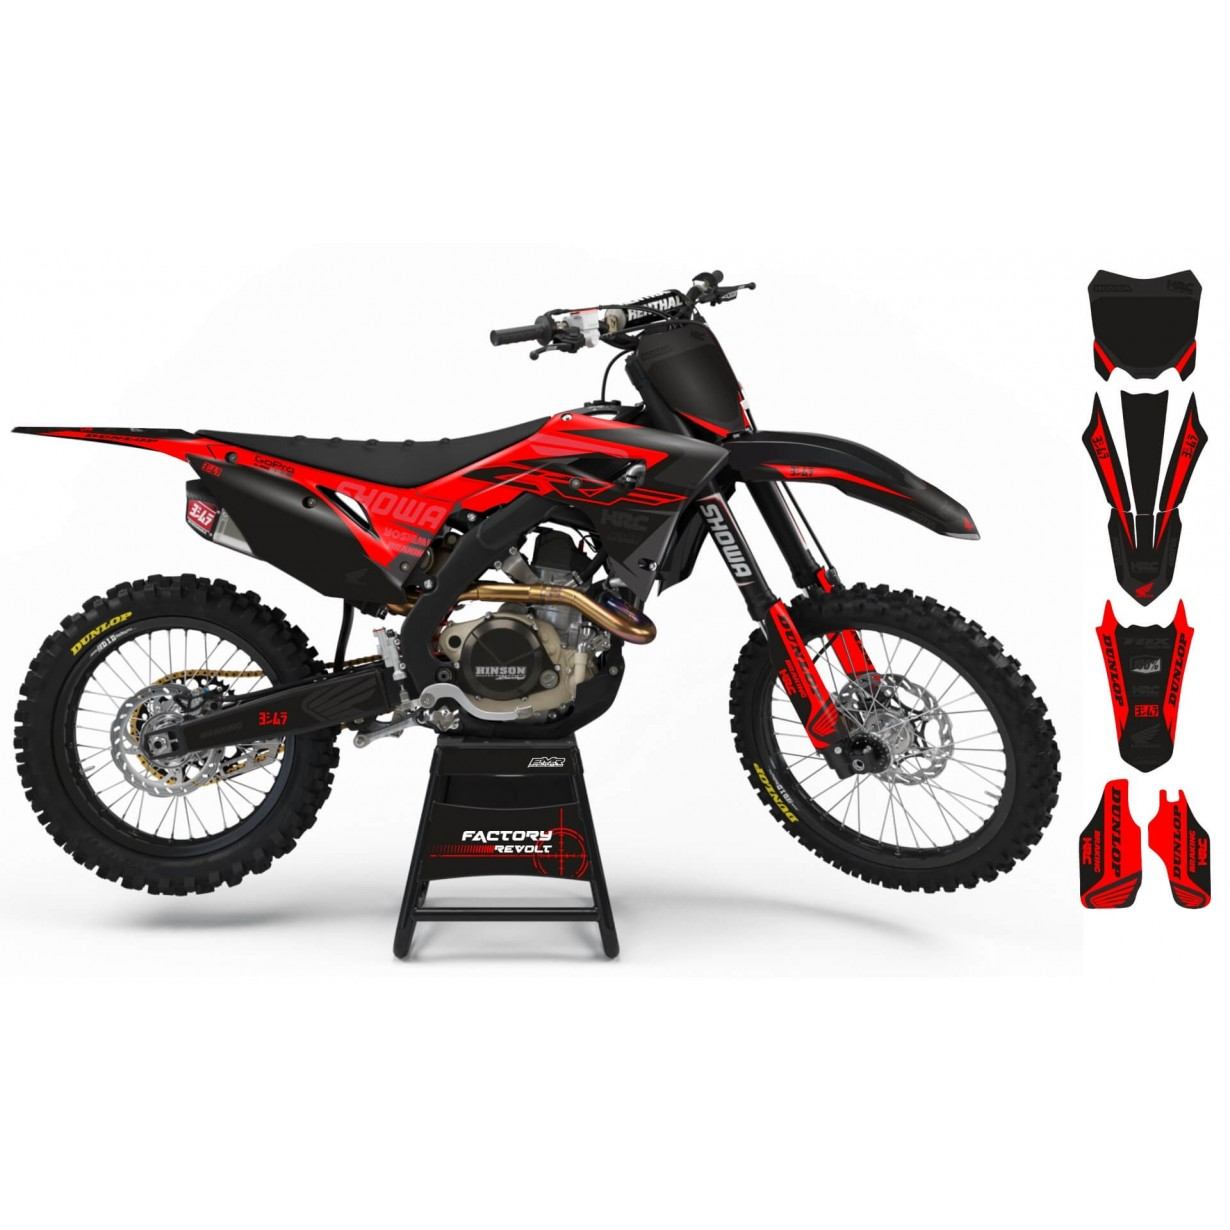 Kit déco Perso HONDA Factory Revolt A26A3 black/red